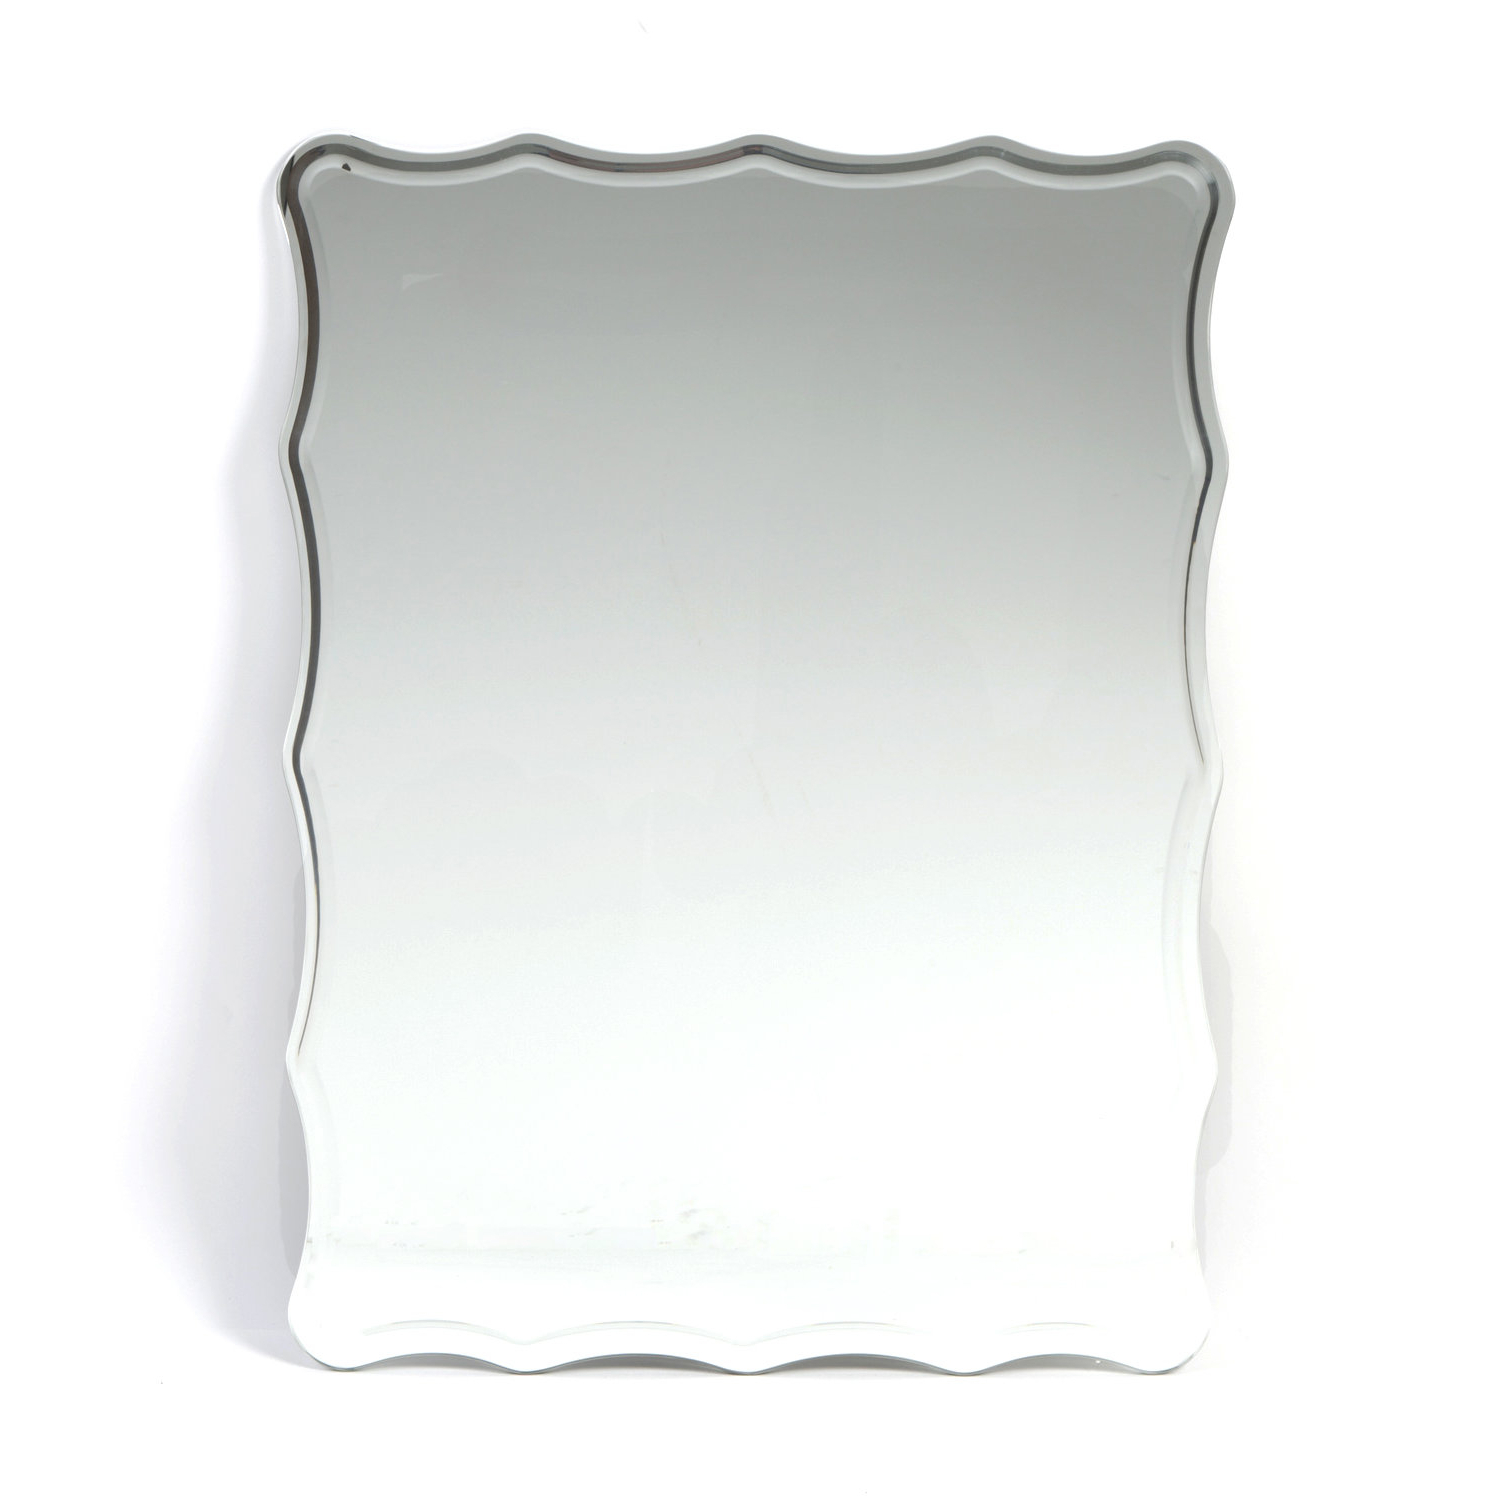 Estefania Frameless Wall Mirror Pertaining To 2019 Estefania Frameless Wall Mirrors (View 6 of 20)